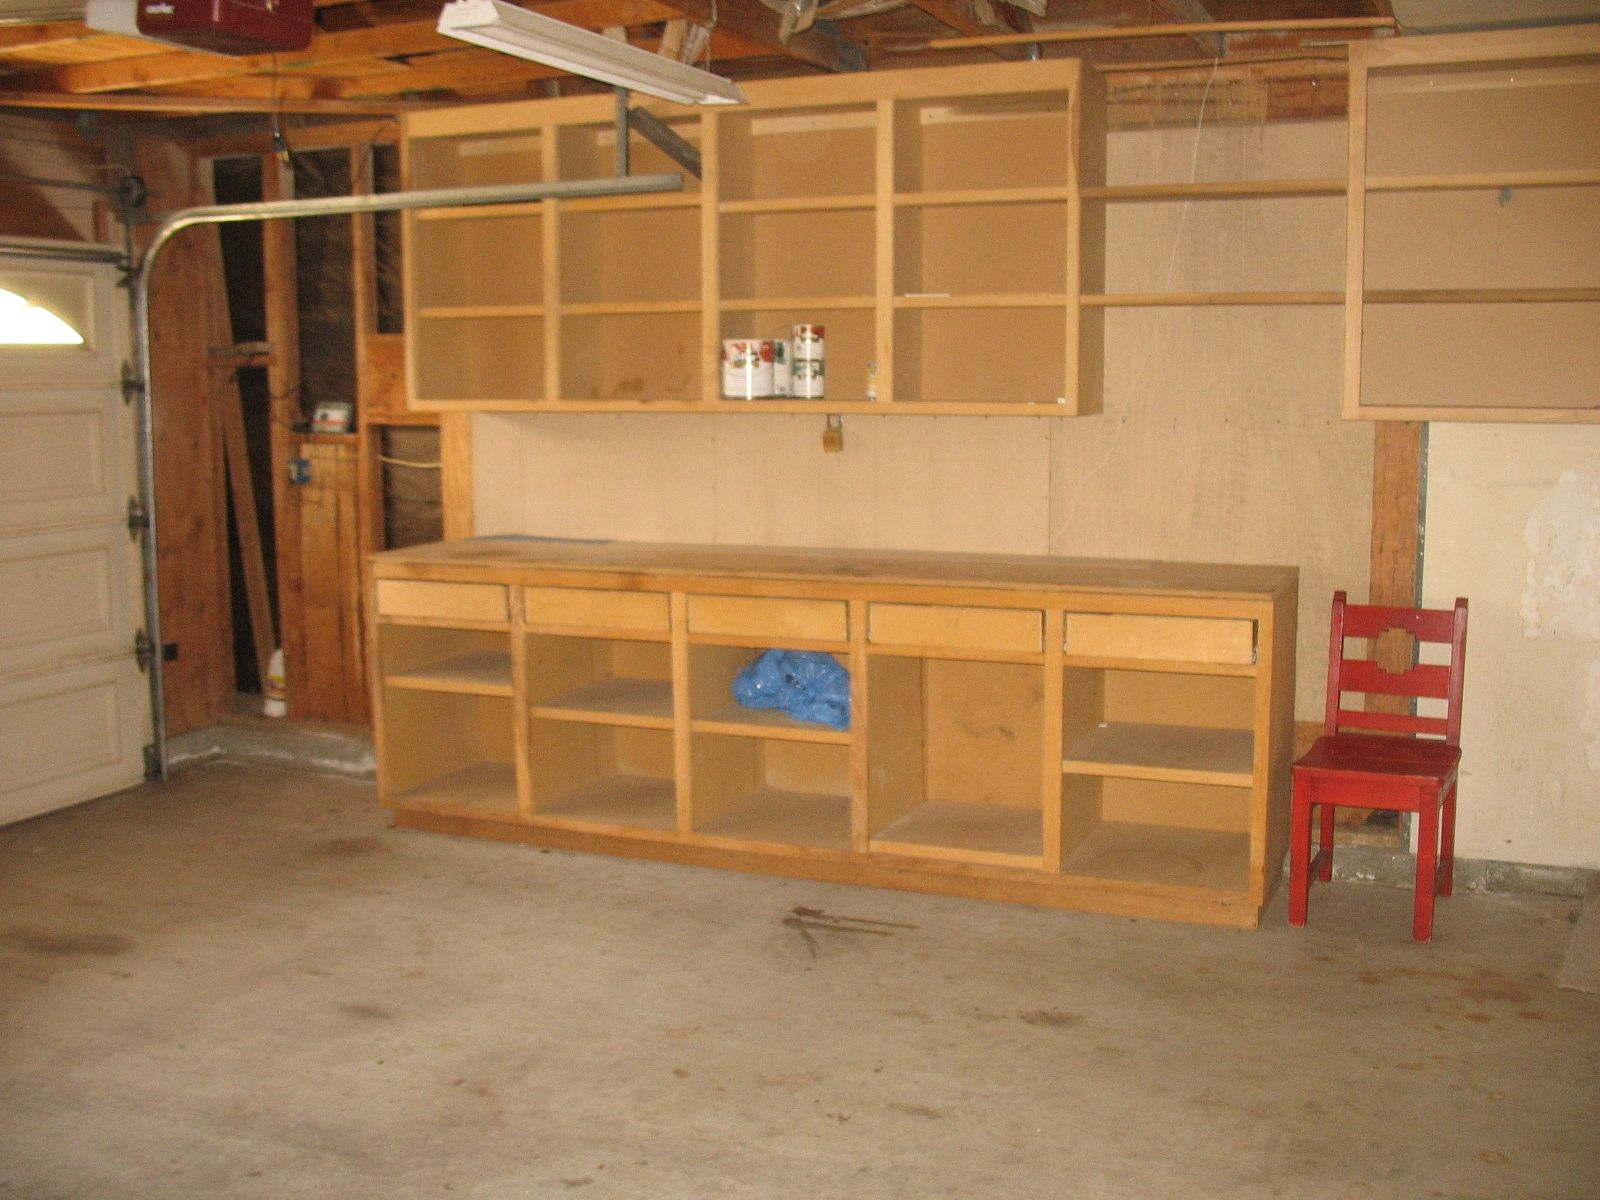 Garage Work Table Plans Drawers Workbench Plan From The Family Handyman It Includes A Fold Out Step By Designed